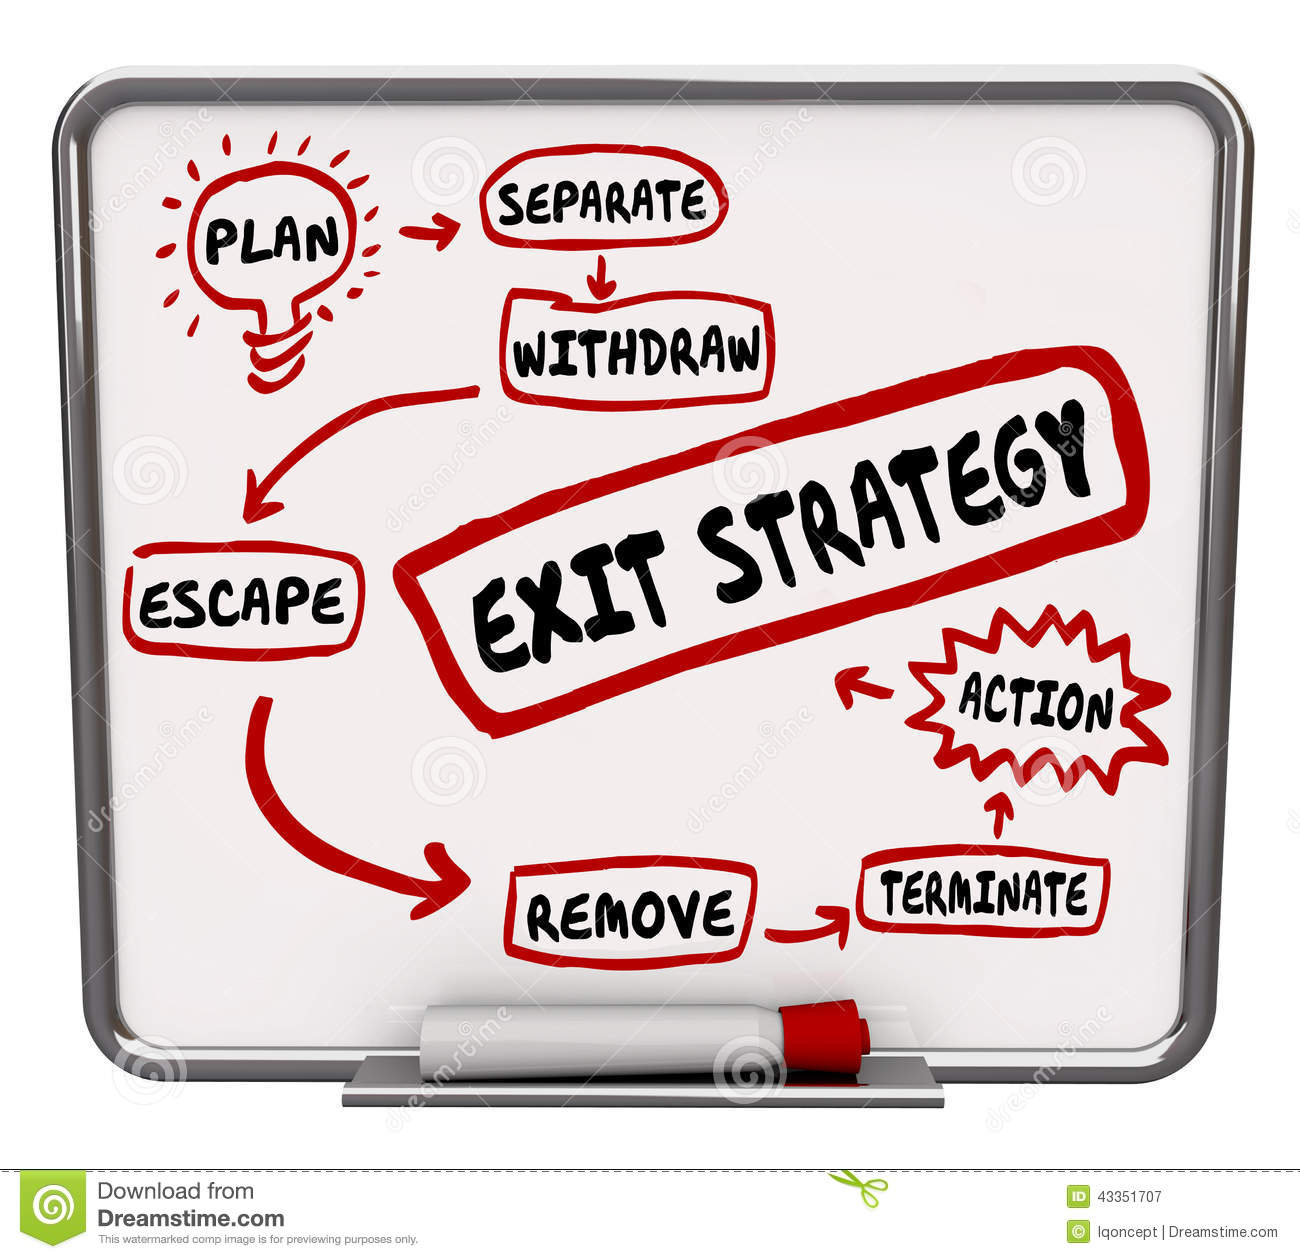 Exit Strategy Plan Written on Dry Erase Board Ending Way Out